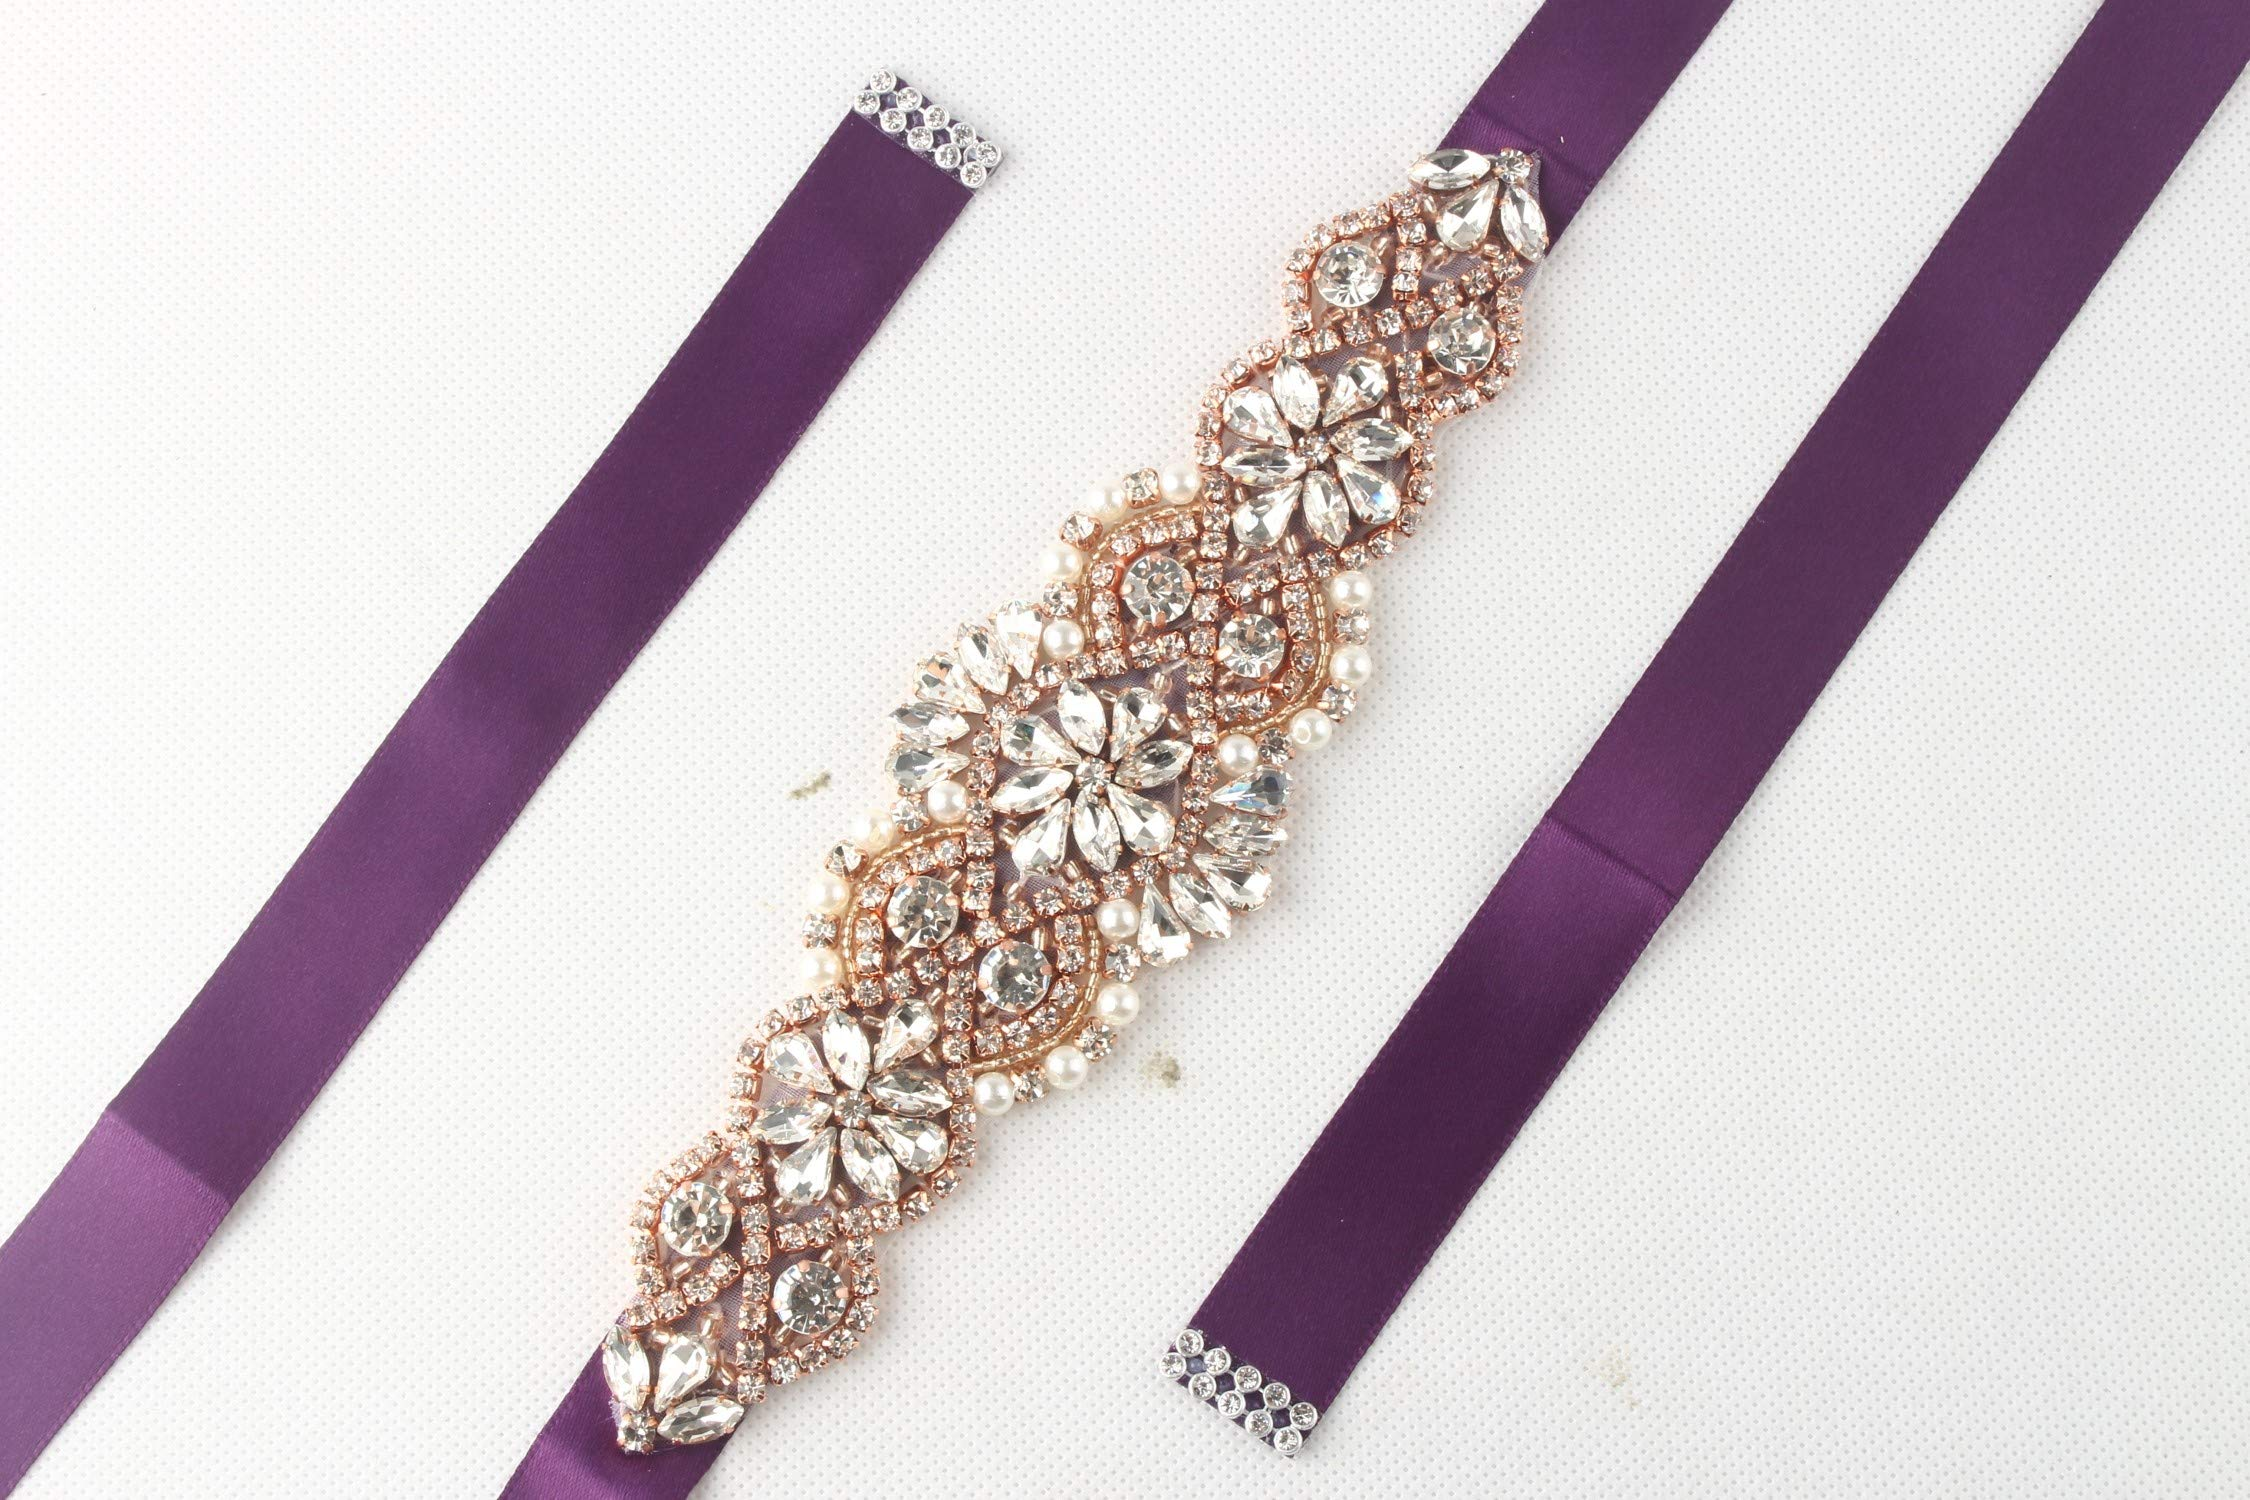 WILTEEXS Handmade Bridal Belt Wedding Belts Sashes Rhinestone Crystal Beads Belt For Bridal Gowns (Rose Gold-purple)